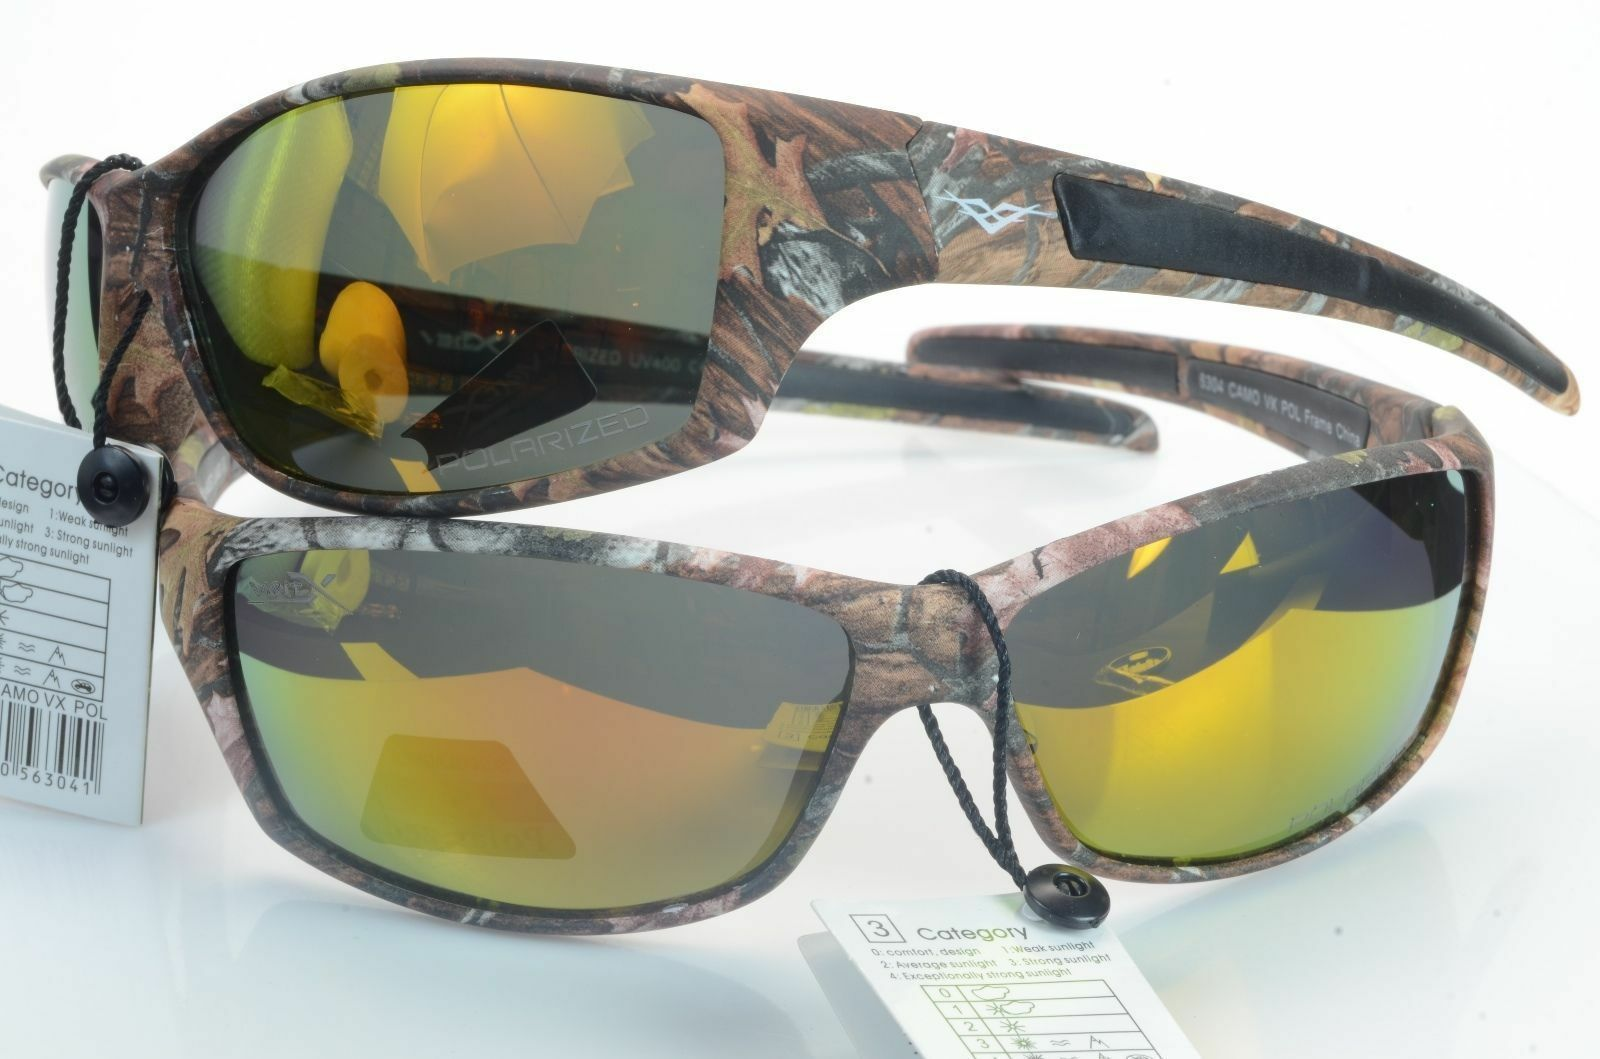 Camouflage Polarized Fishing 56304 Sunglasses Hunting Outdoor Yellow Sport Vertx PukZXOi